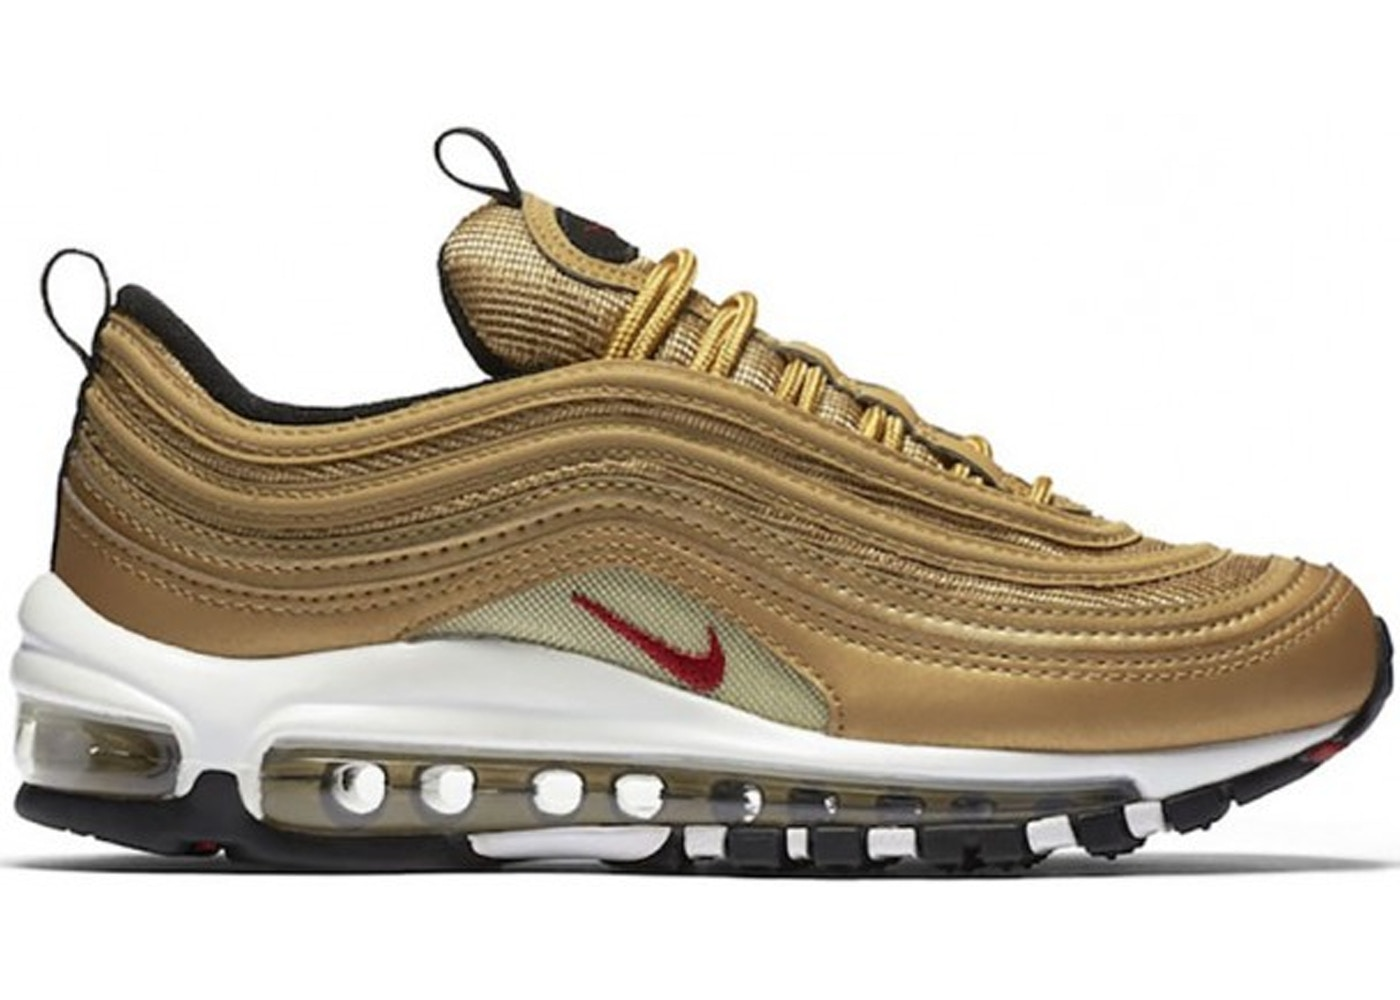 Nike Air Max 97 Ultra 17 Metallic Gold 918356 700